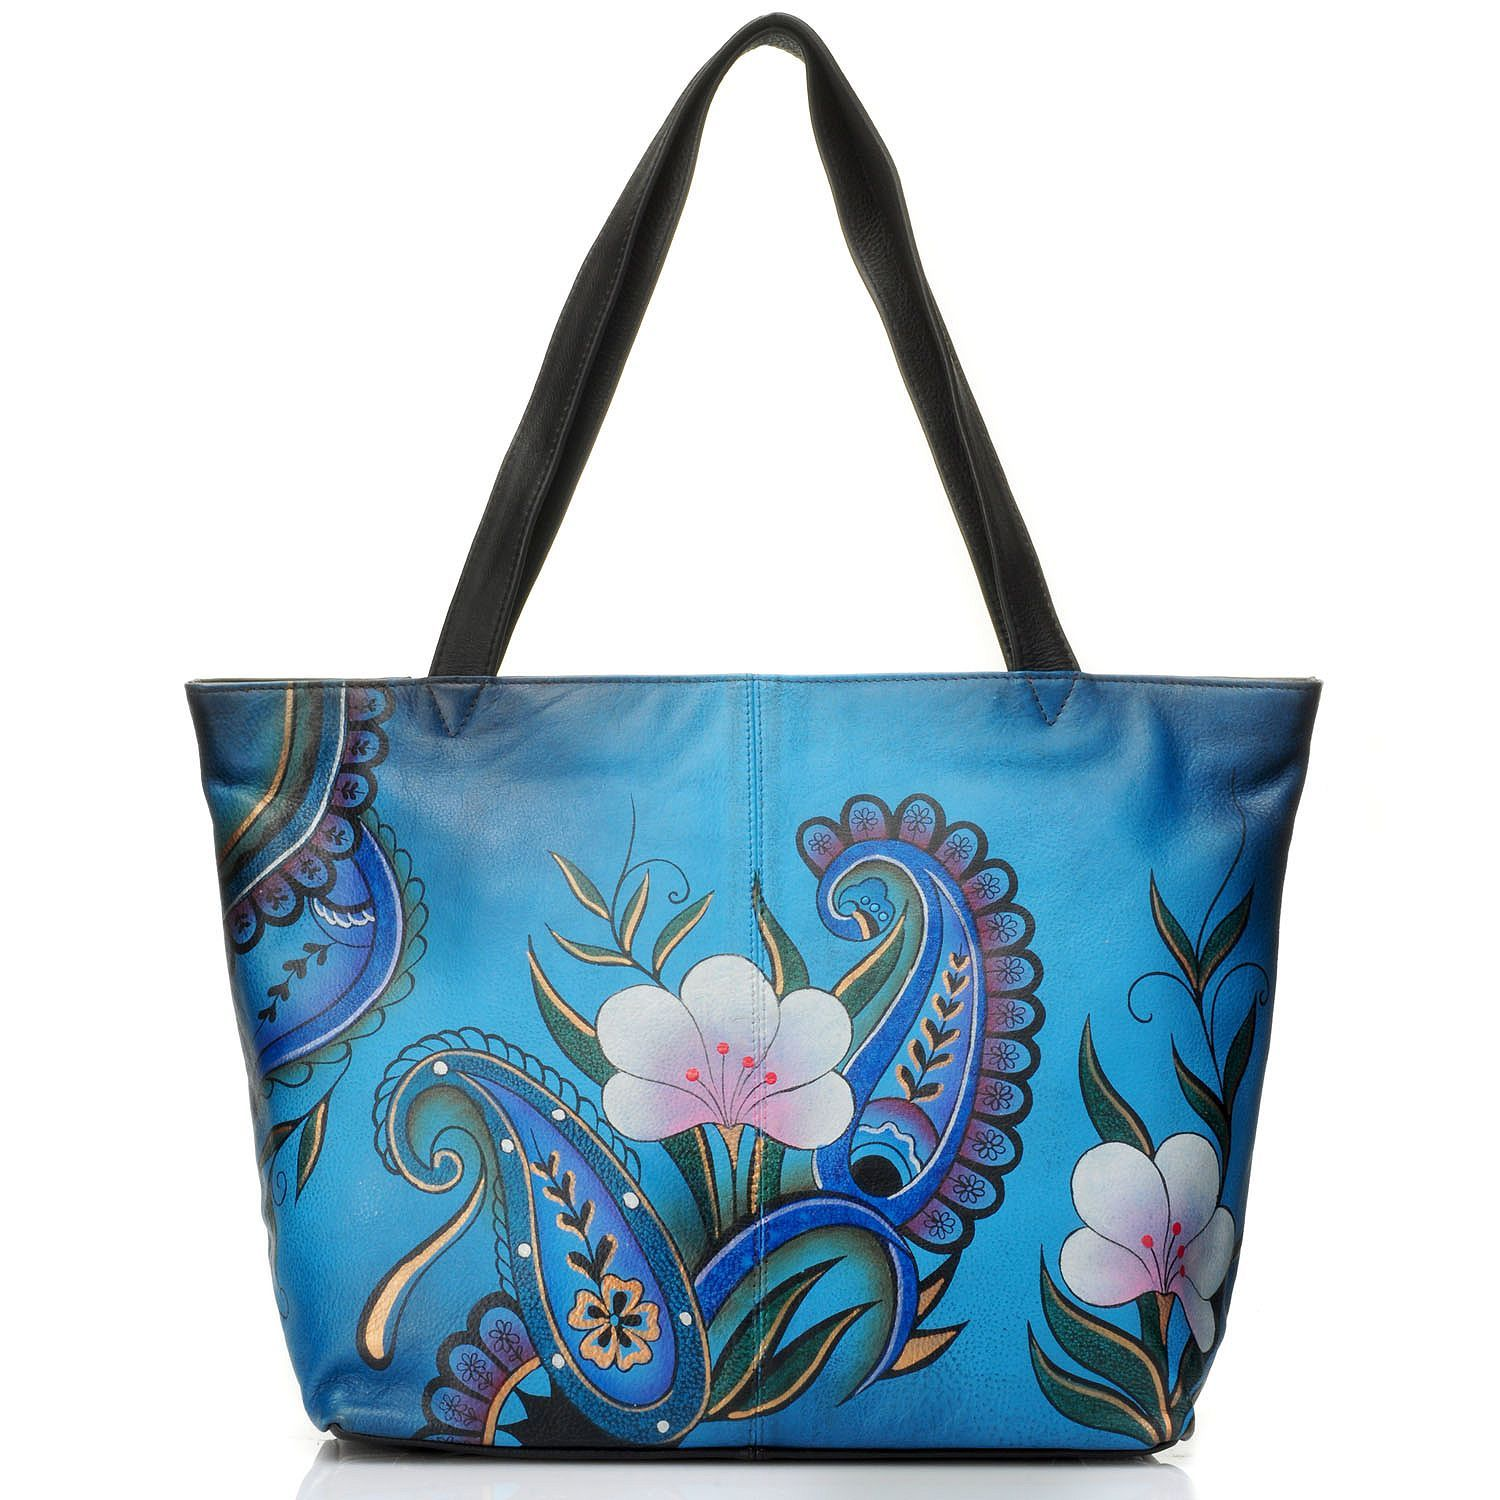 Anuschka Zip Top Hand Painted Leather Large Tote Bag. Hand painted handbag.  Been carrying for a couple months. Love it! c195ea773370d